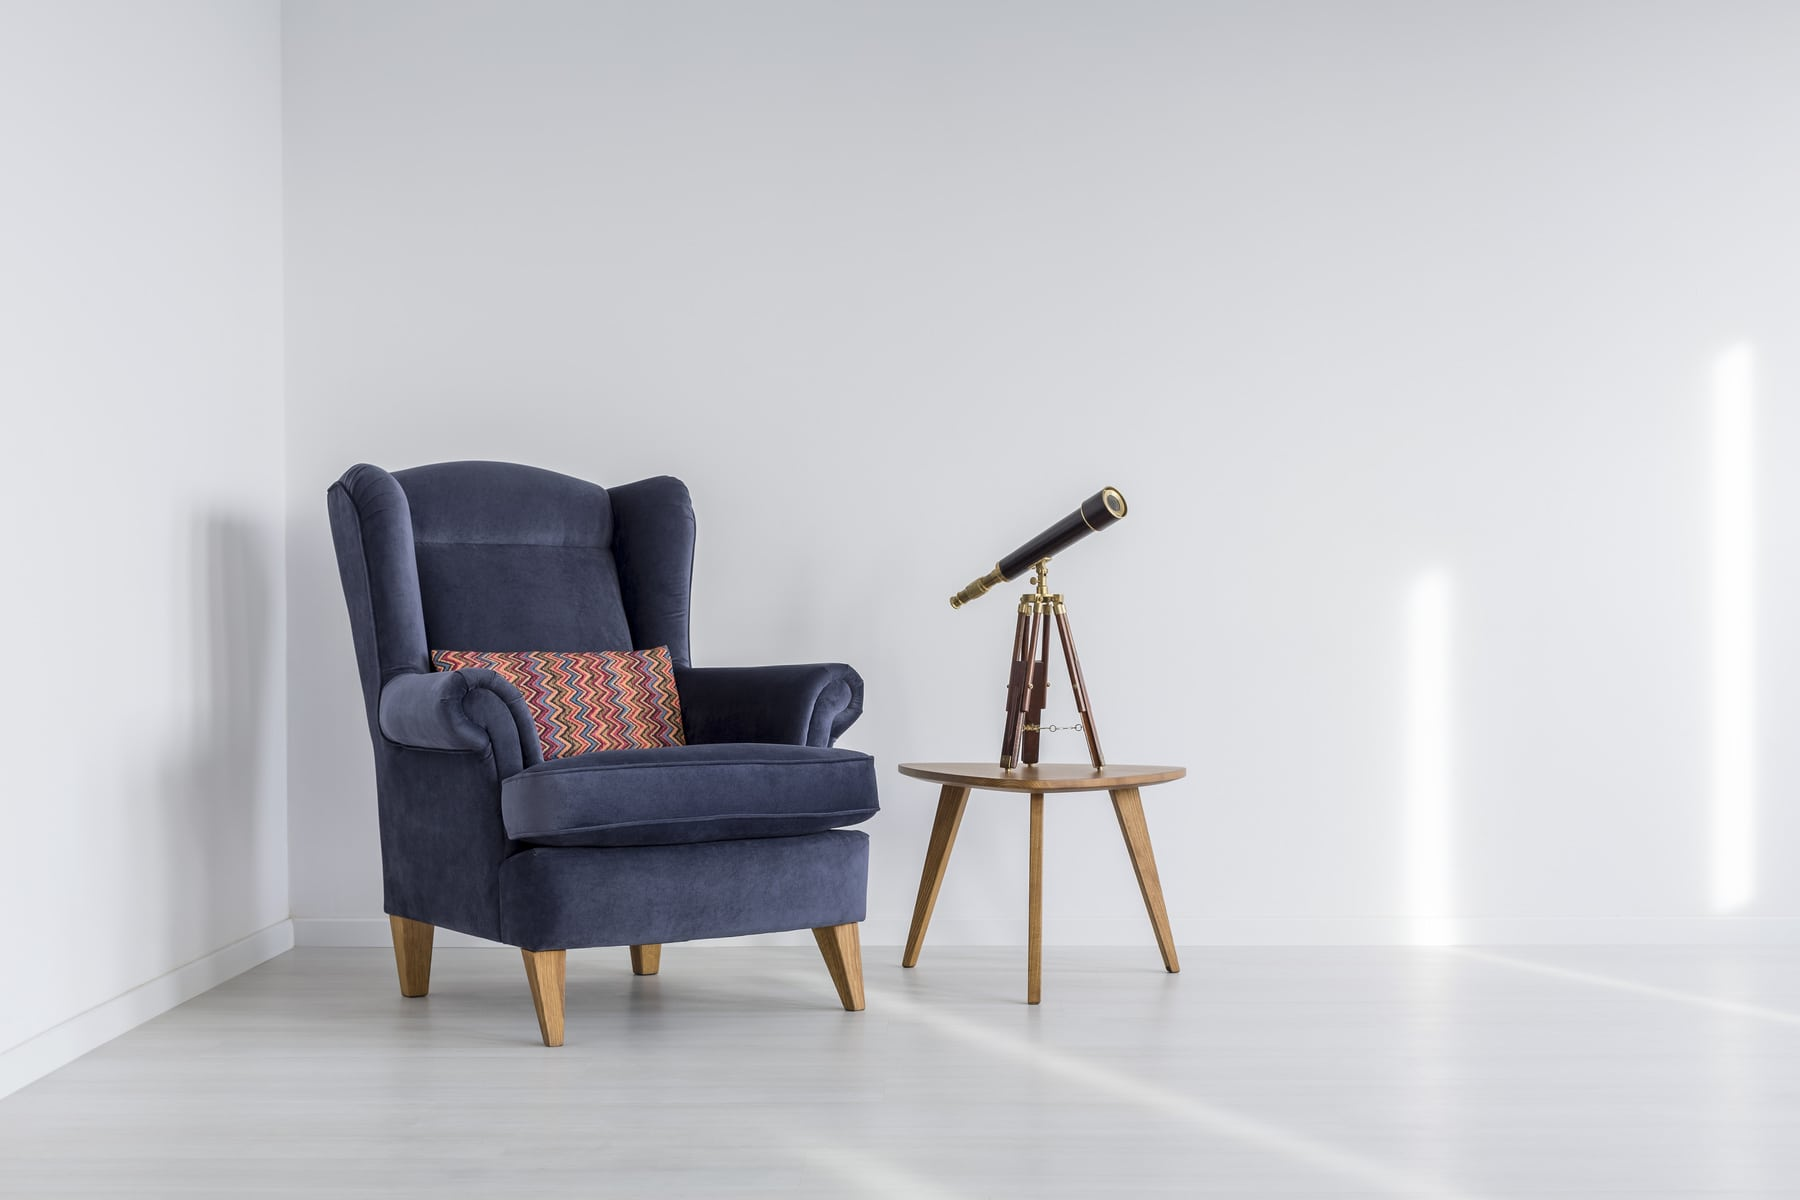 Telescope in small coffee table in cozy space with armchair